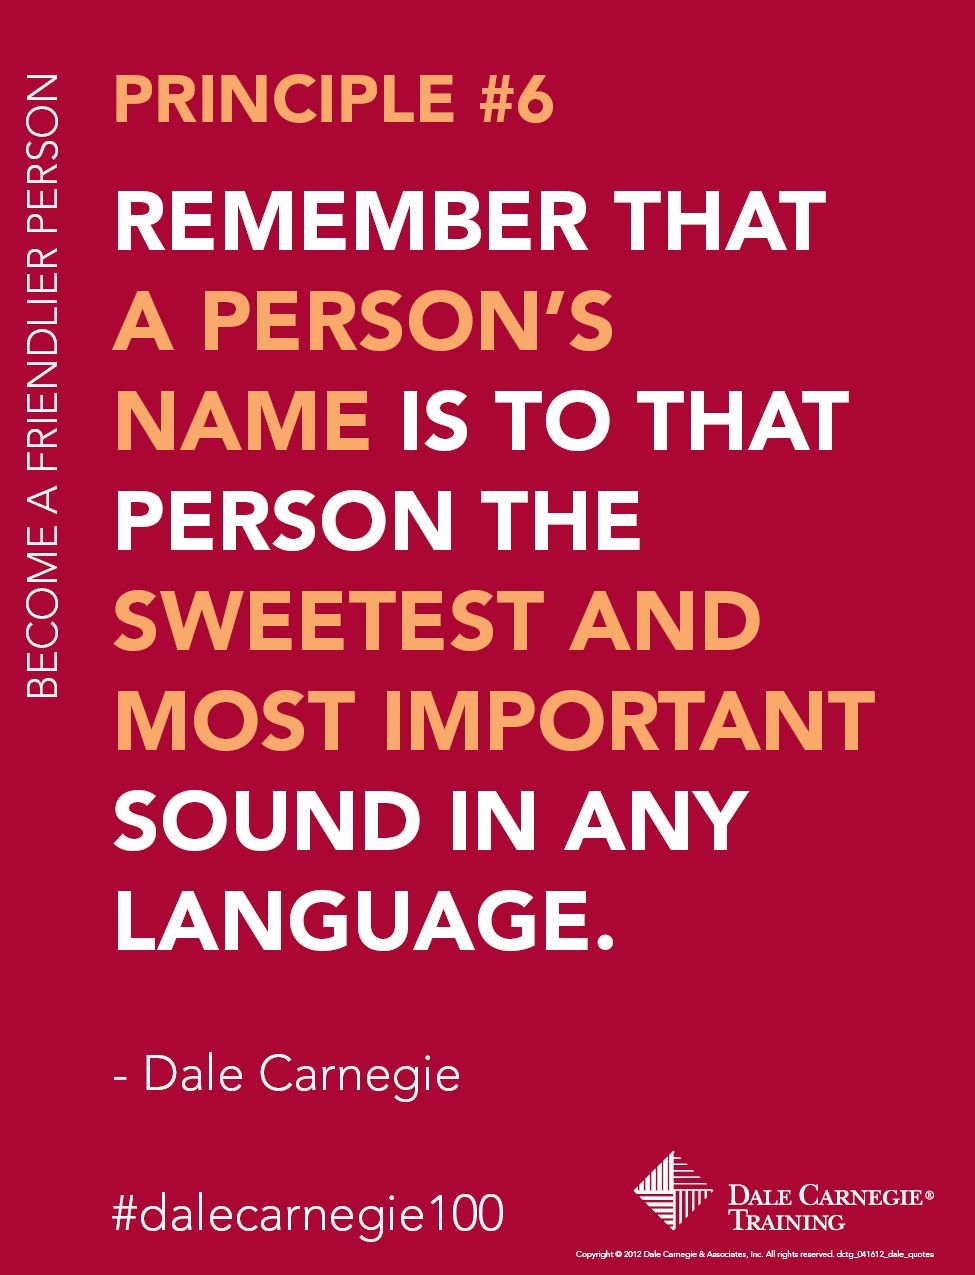 "Dale Carnegie Quotes Stunning Dale Carnegie Principle #6 ""remember That A Person's Name Is To"